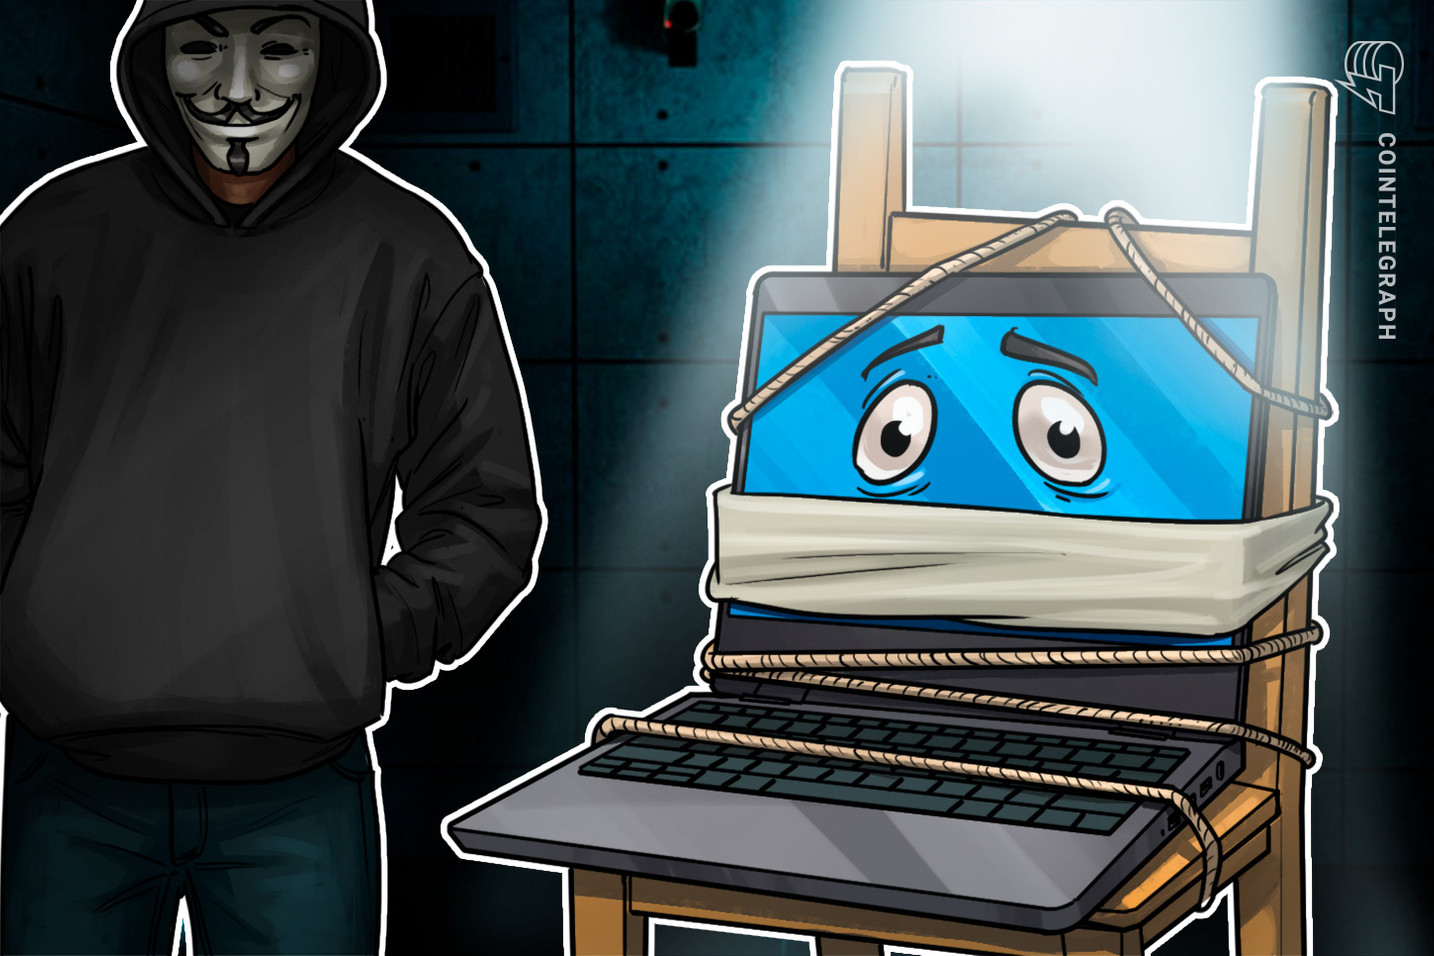 Israeli Software Firm Goes Behind Regulator's Back to Pay $250,000 in BTC Ransom